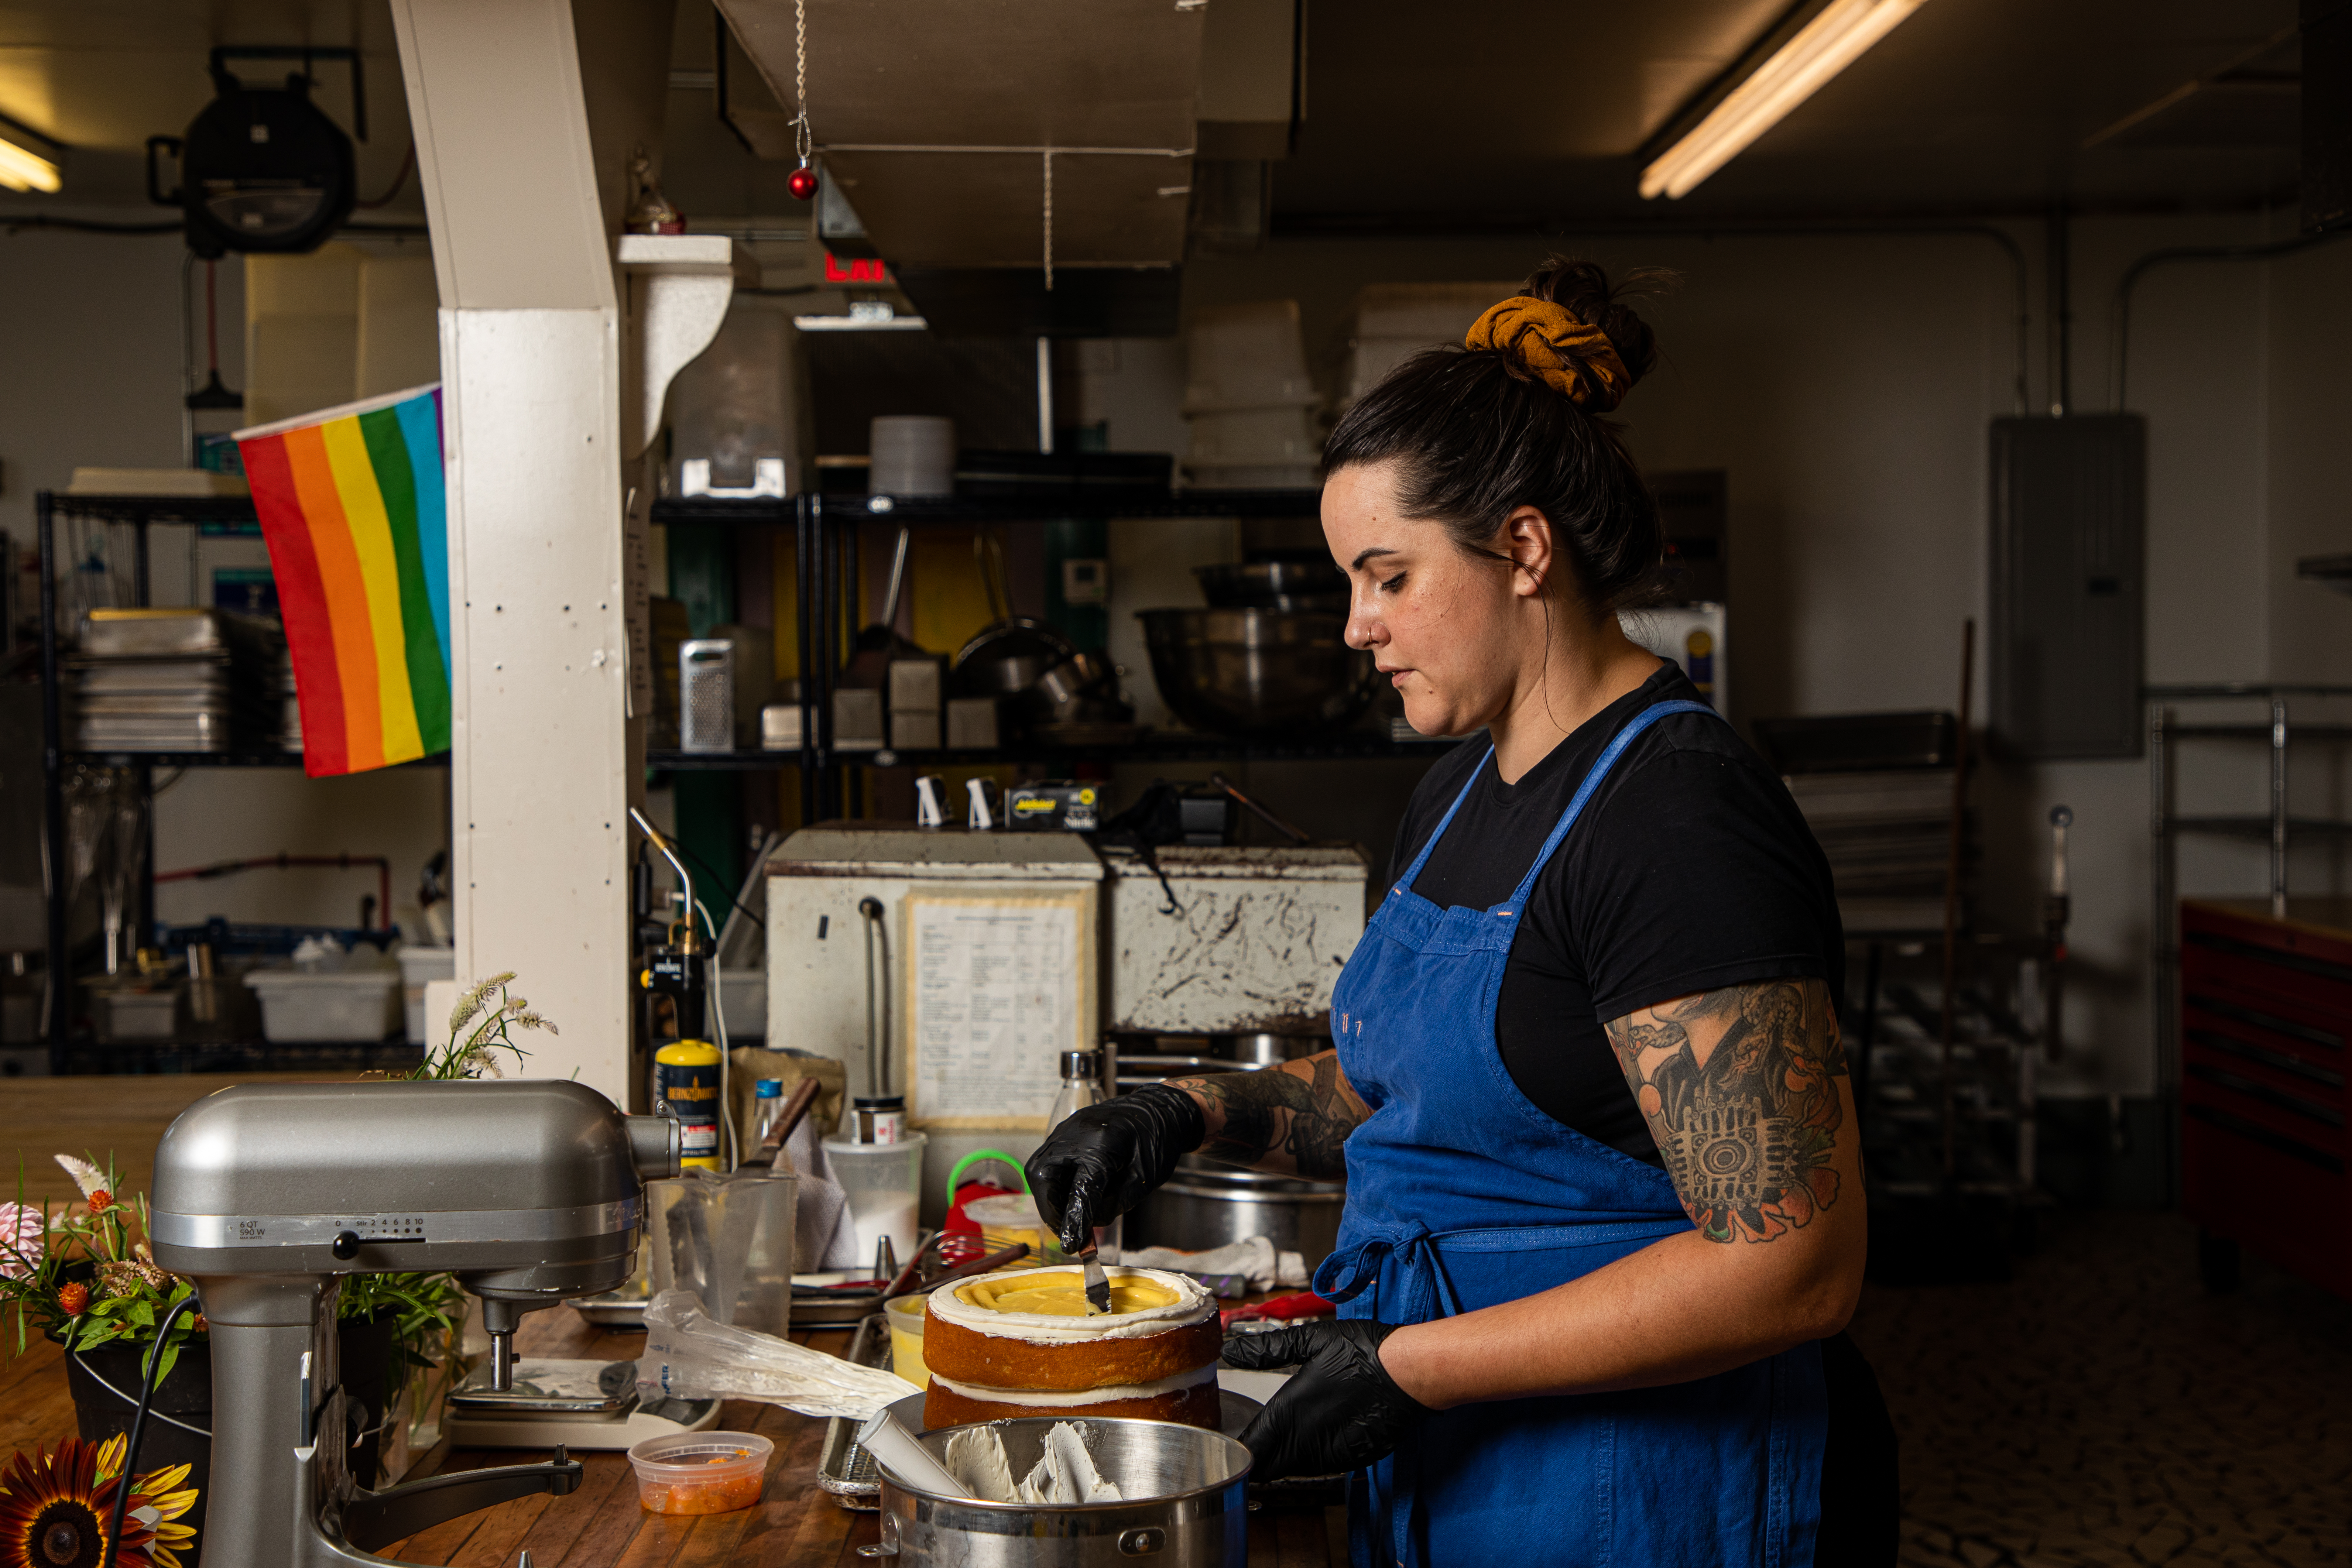 A woman in a black shirt and blue apron ices a cake in a commercial kitchen with a Pride flag in the background